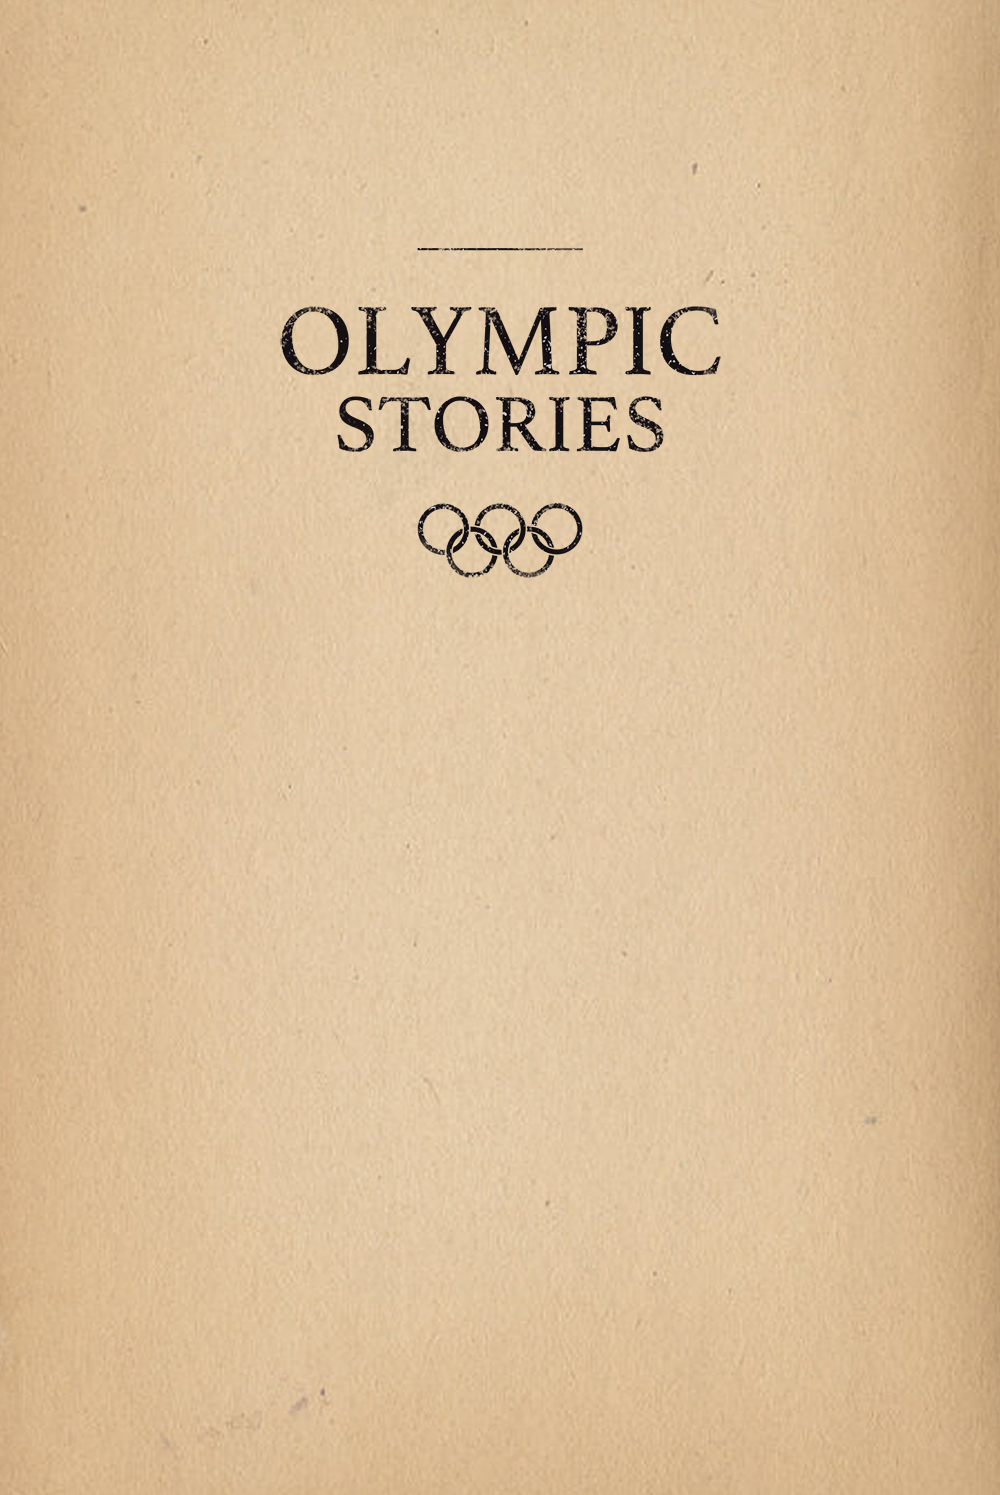 Hoja Olympic Stories